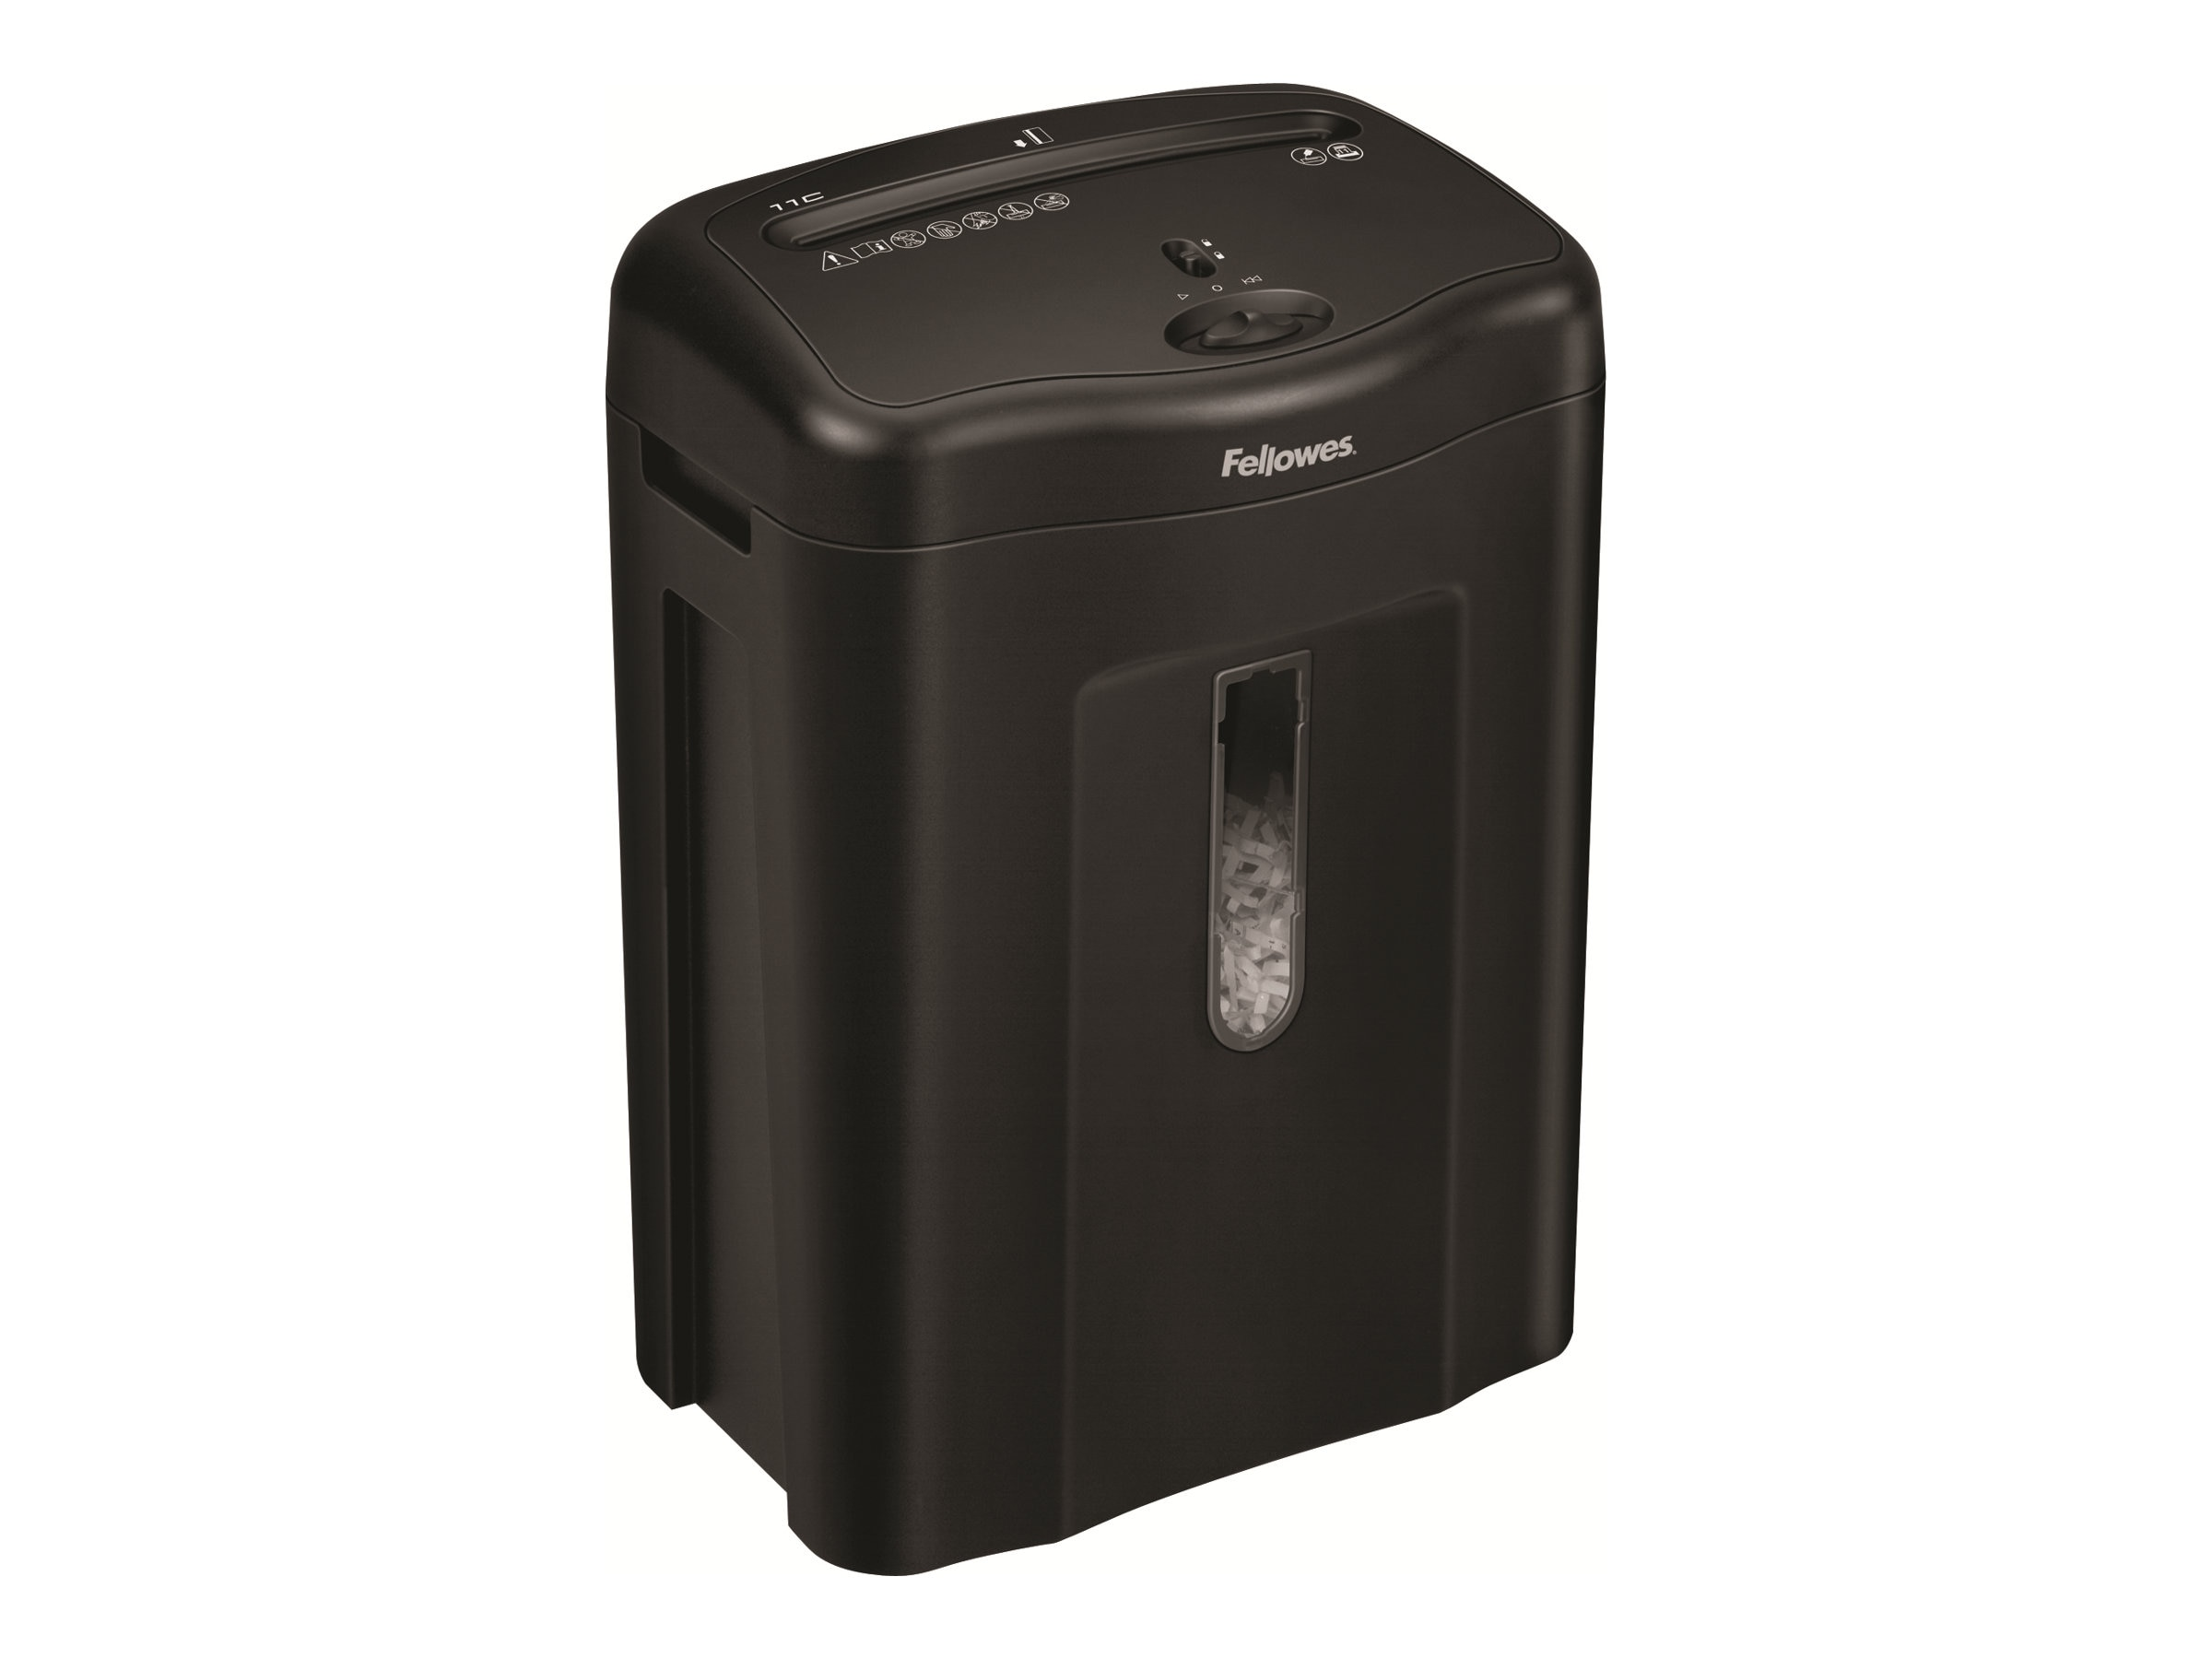 Fellowes 4350001 Image 3